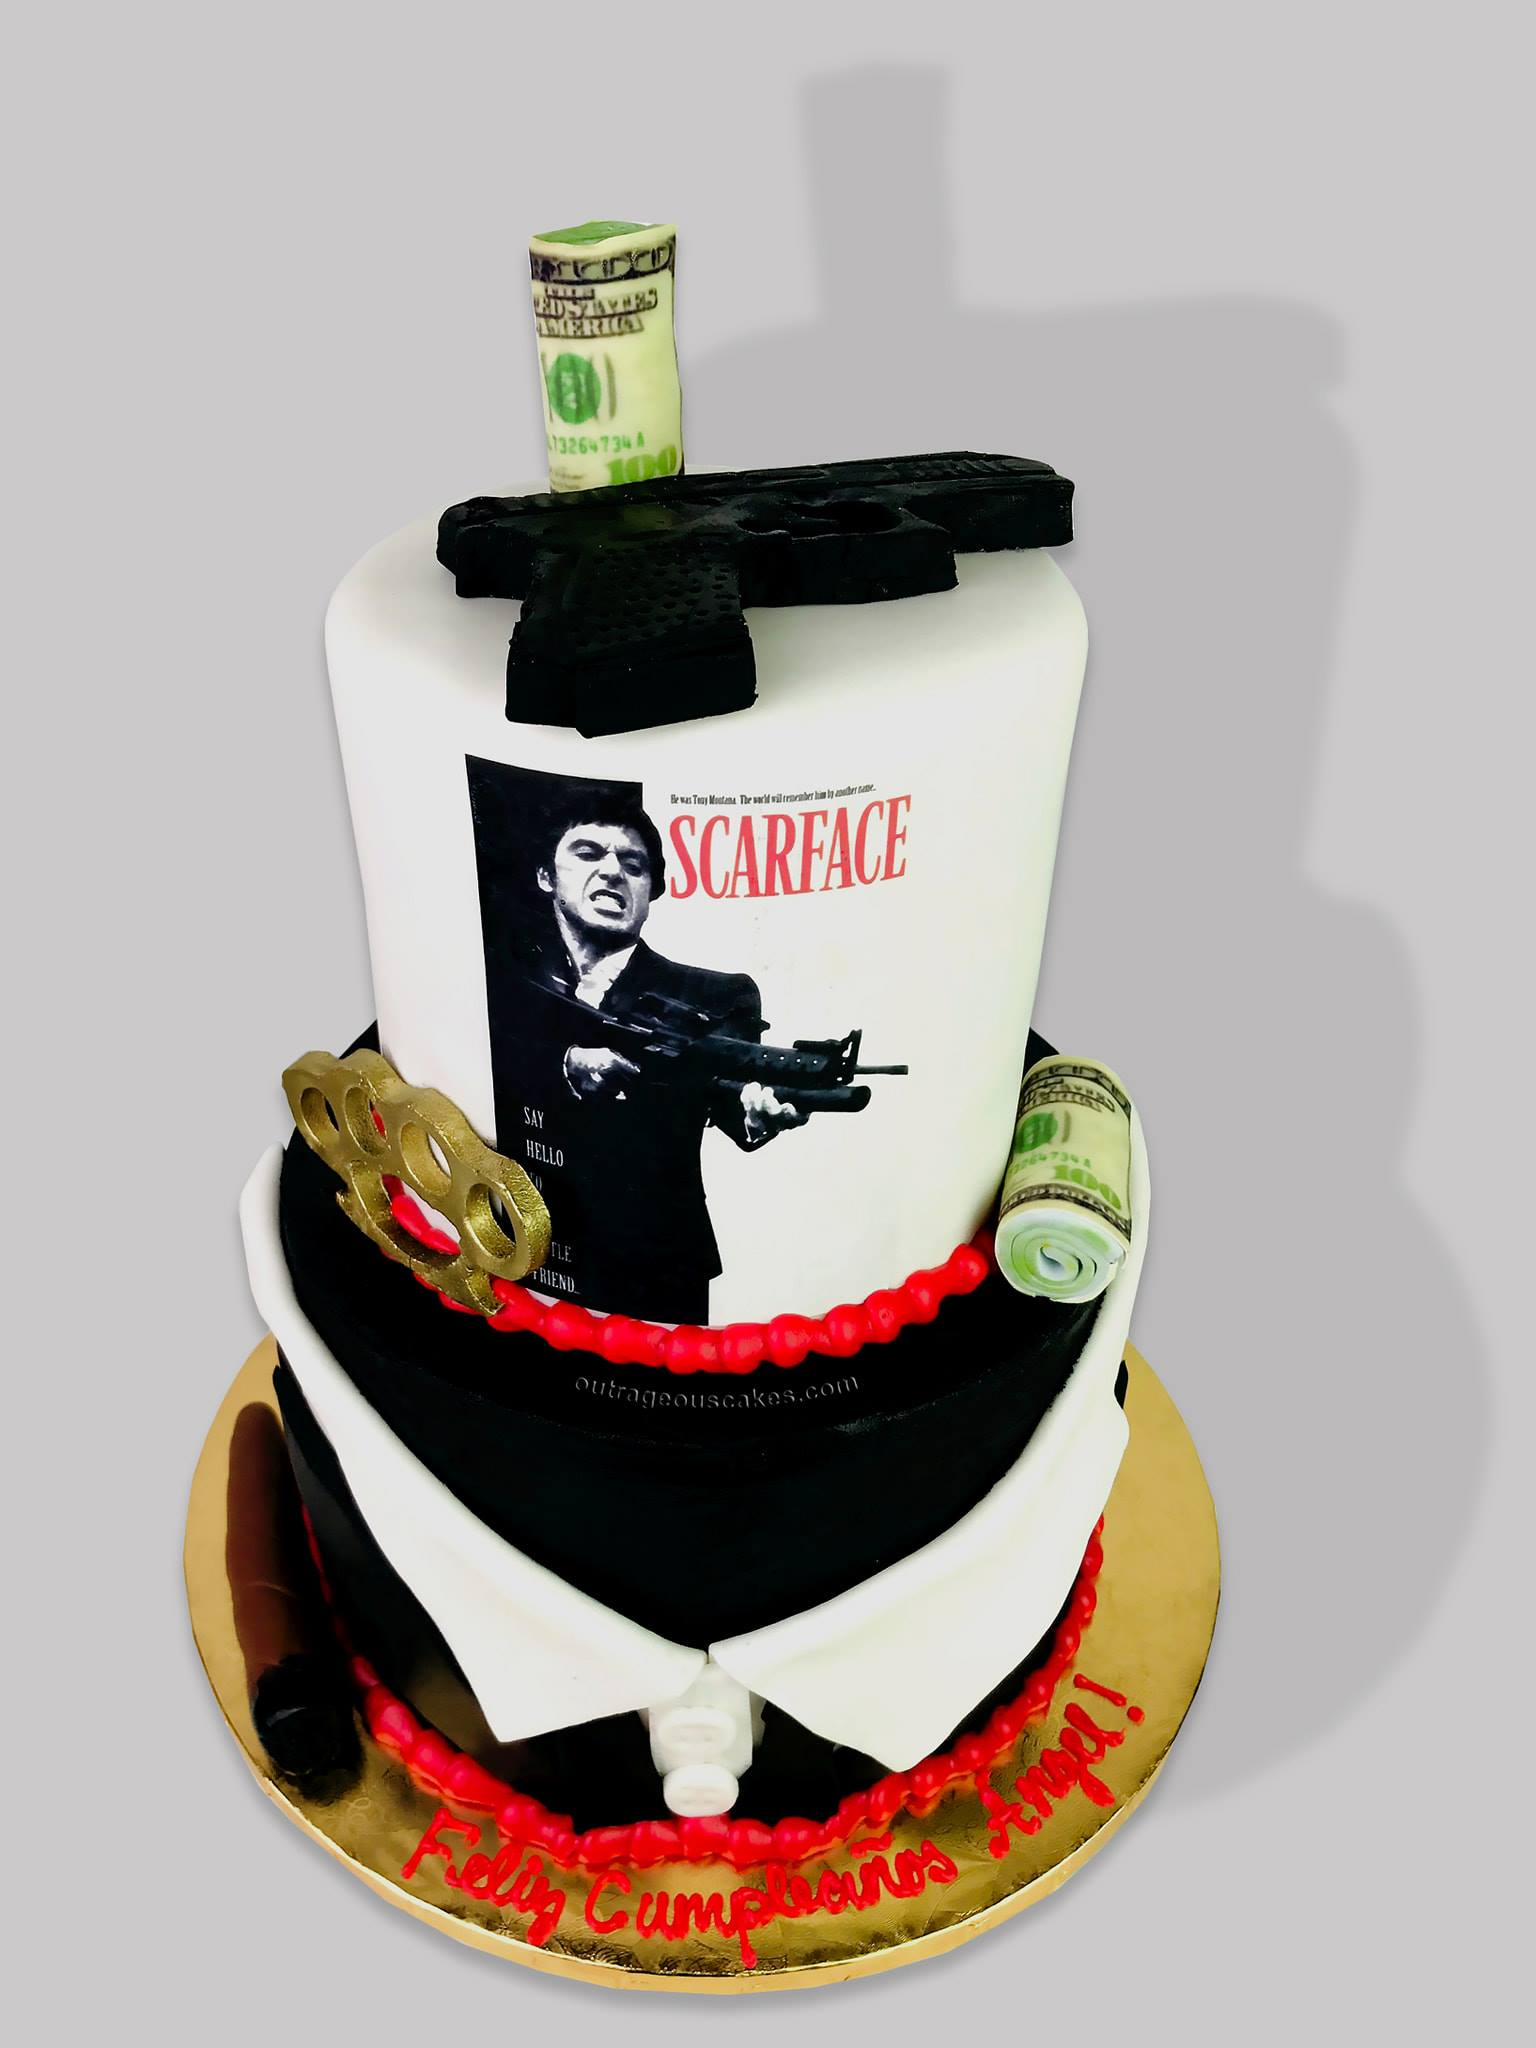 Scarface Themed Cake